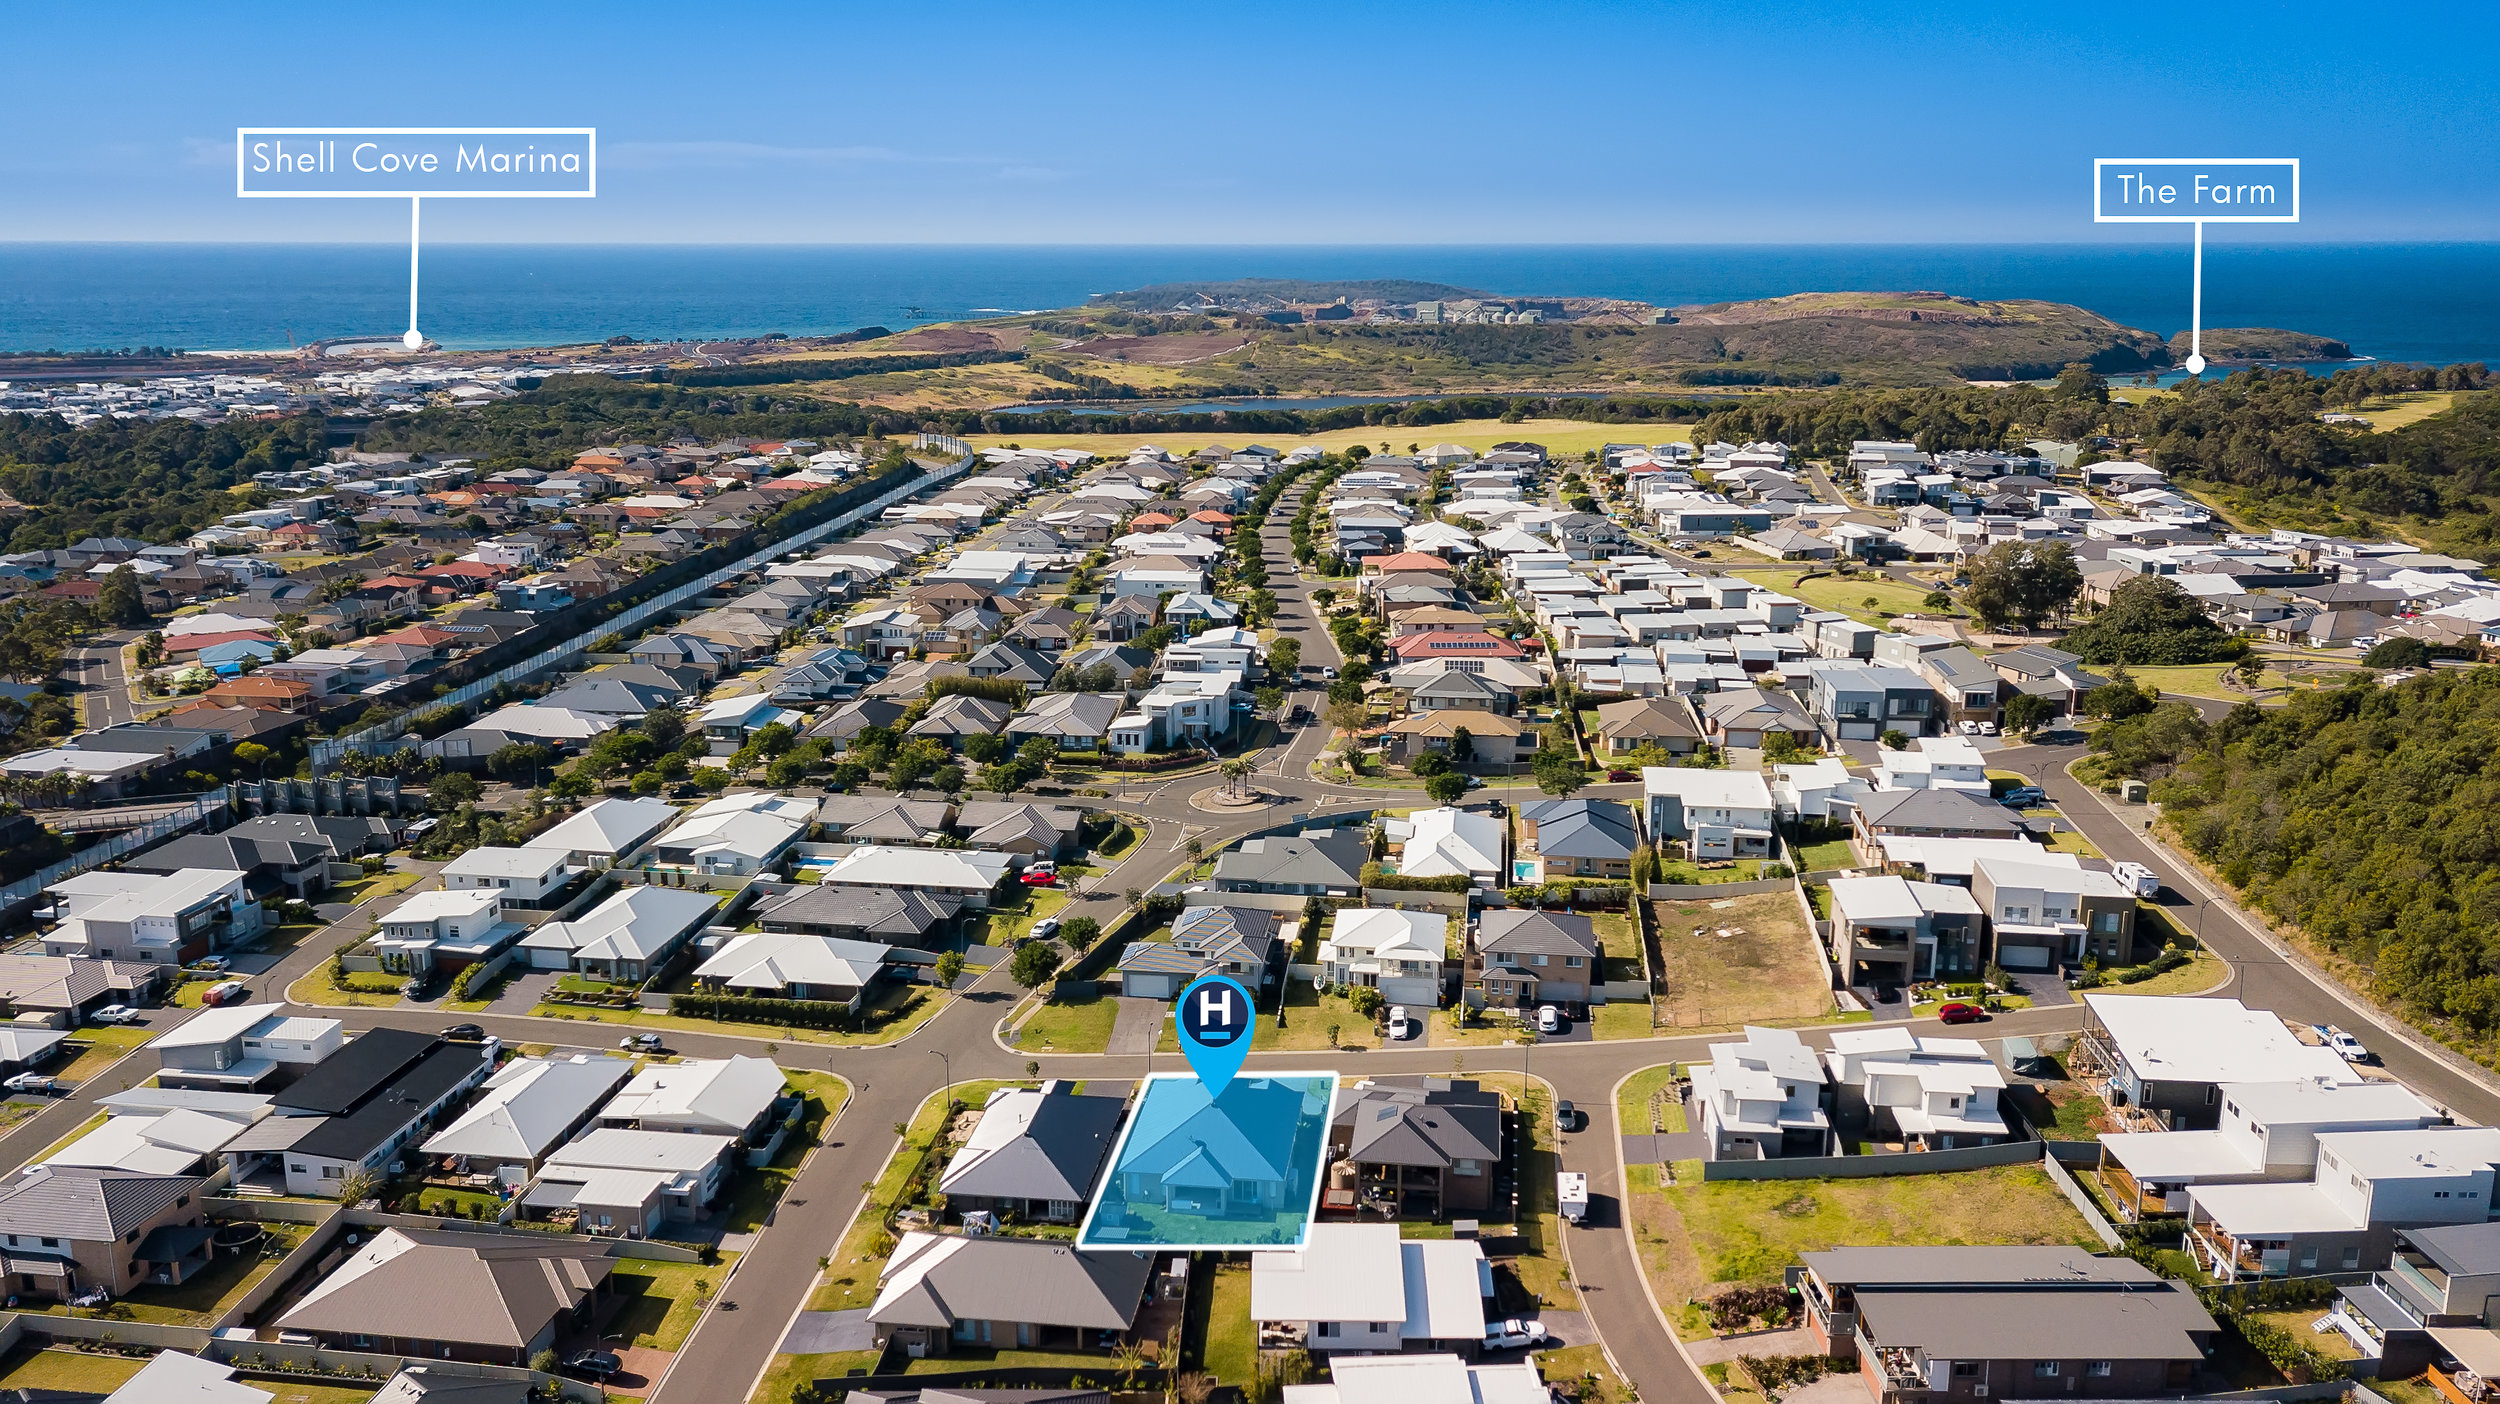 Kiama, Shellharbour, Gerringong, Berry, Wollongong, South Coast, Illawarra,  Commercial real estate photographer, Commercial real estate exteriors, architectural Photography, architectural photographer, Commercial real estate photographer kiama, kiama Commercial real estate, commercial real estate Photographer kiama, kiama Photographer, architectural photographer, Architectural photography kiama, kiama architecture, Commercial real estate photographer, Commercial, real, estate, photographer, commercial exterior photographer, Exterior building photography, aerial Photography aerial photographer, drone Services, drone pilot, drone videographer, drone Photos, drone photographer kiama, kiama aerial Photography, commercial space photographer, Commercial spaces, commercial real estate Photos, commercial real estate photography Best, best commercial real estate photography, Best commercial real estate photographer in kiama, shutter speed studios, ben greaves commercial real estate photography, best architectural photographer, architecture, architecture phot, architecture photography, architecture photographer kiama